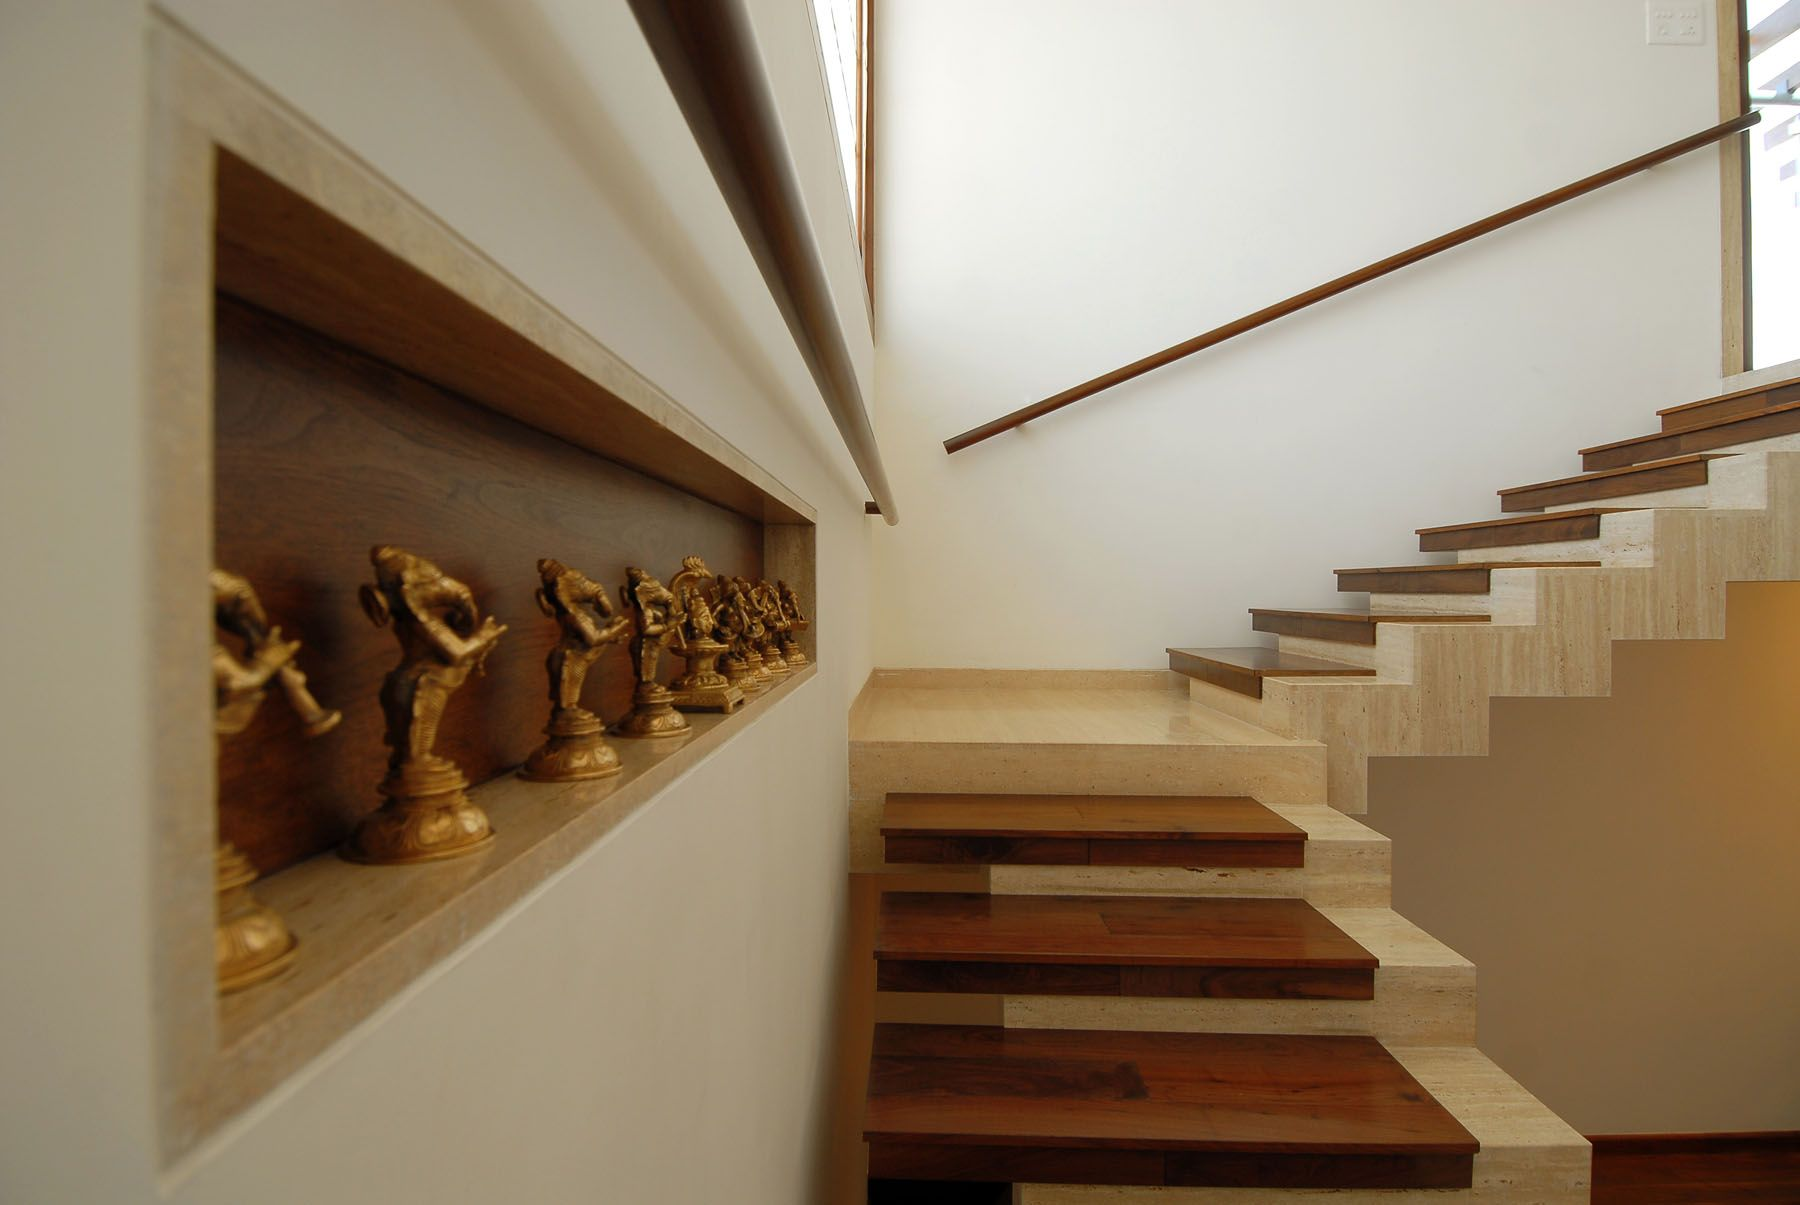 Duplex Apartment Design Exterior duplex house interior design #stairs pinnedwww.modlar